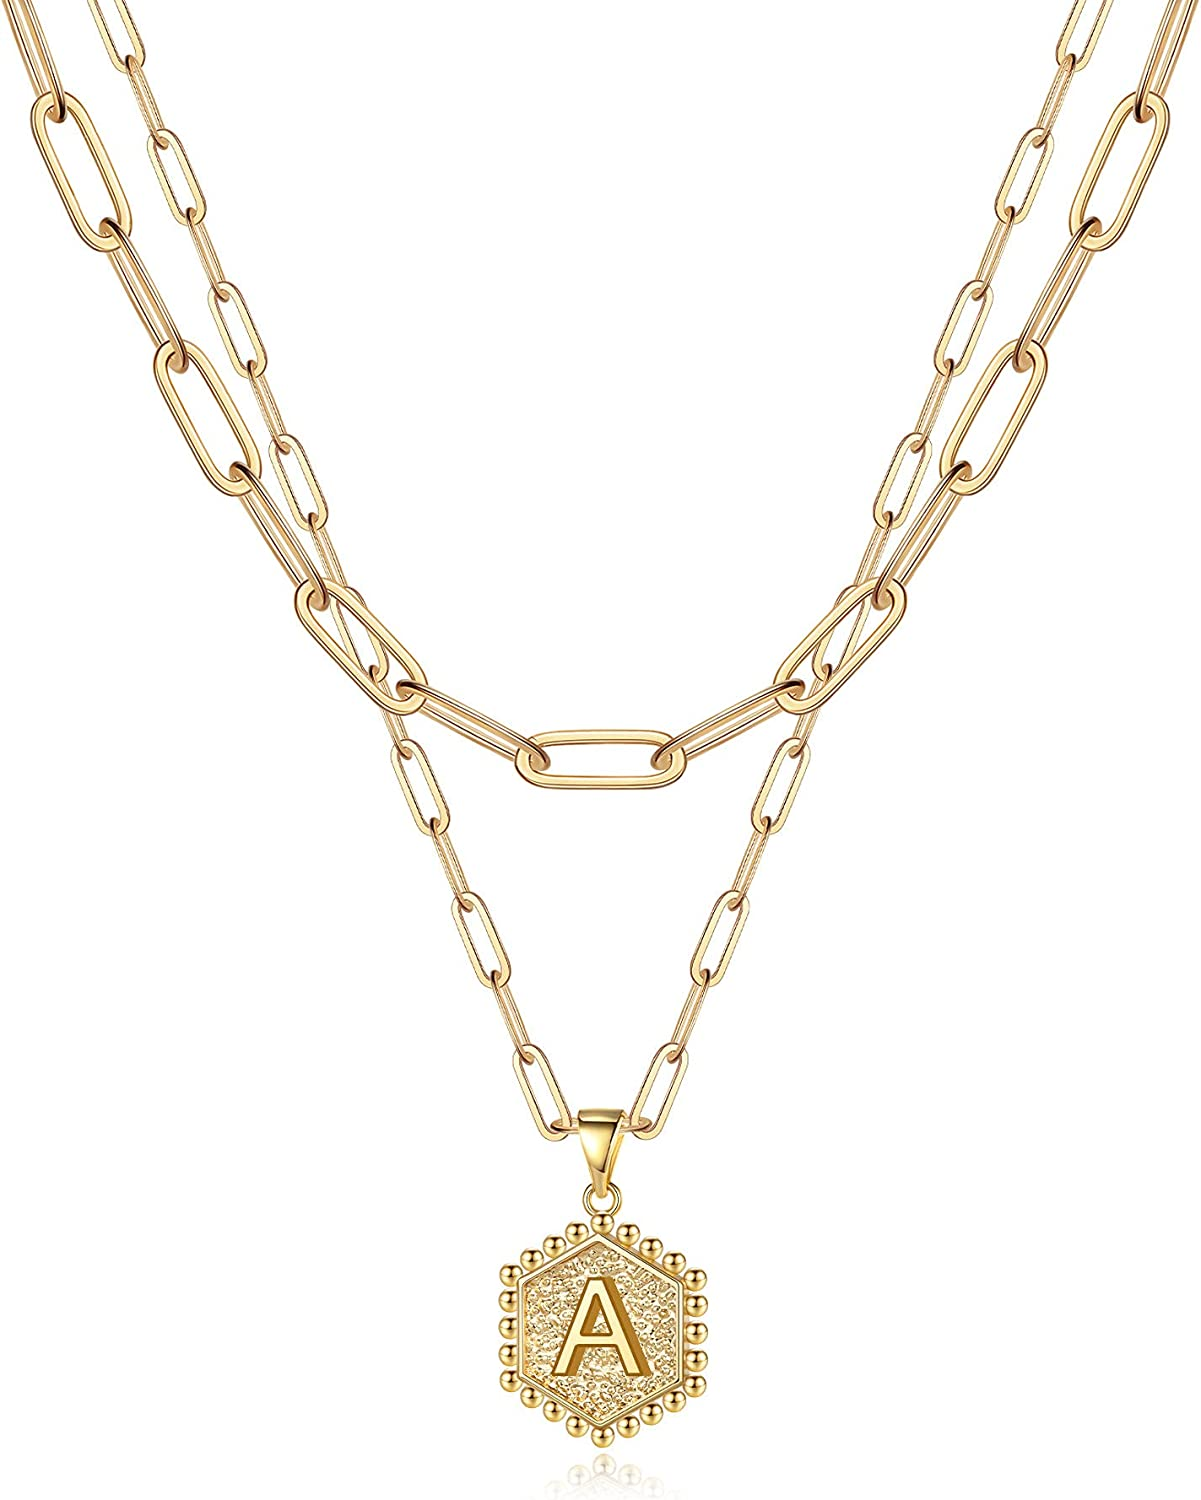 Anoup Gold Layered Necklaces for Women, 14K Gold Plated Paperclip Chain Necklace for Women Dainty Gold Necklace Hexagon Letter Pendant Initial Necklace Layering Necklaces Gold Necklaces for Women